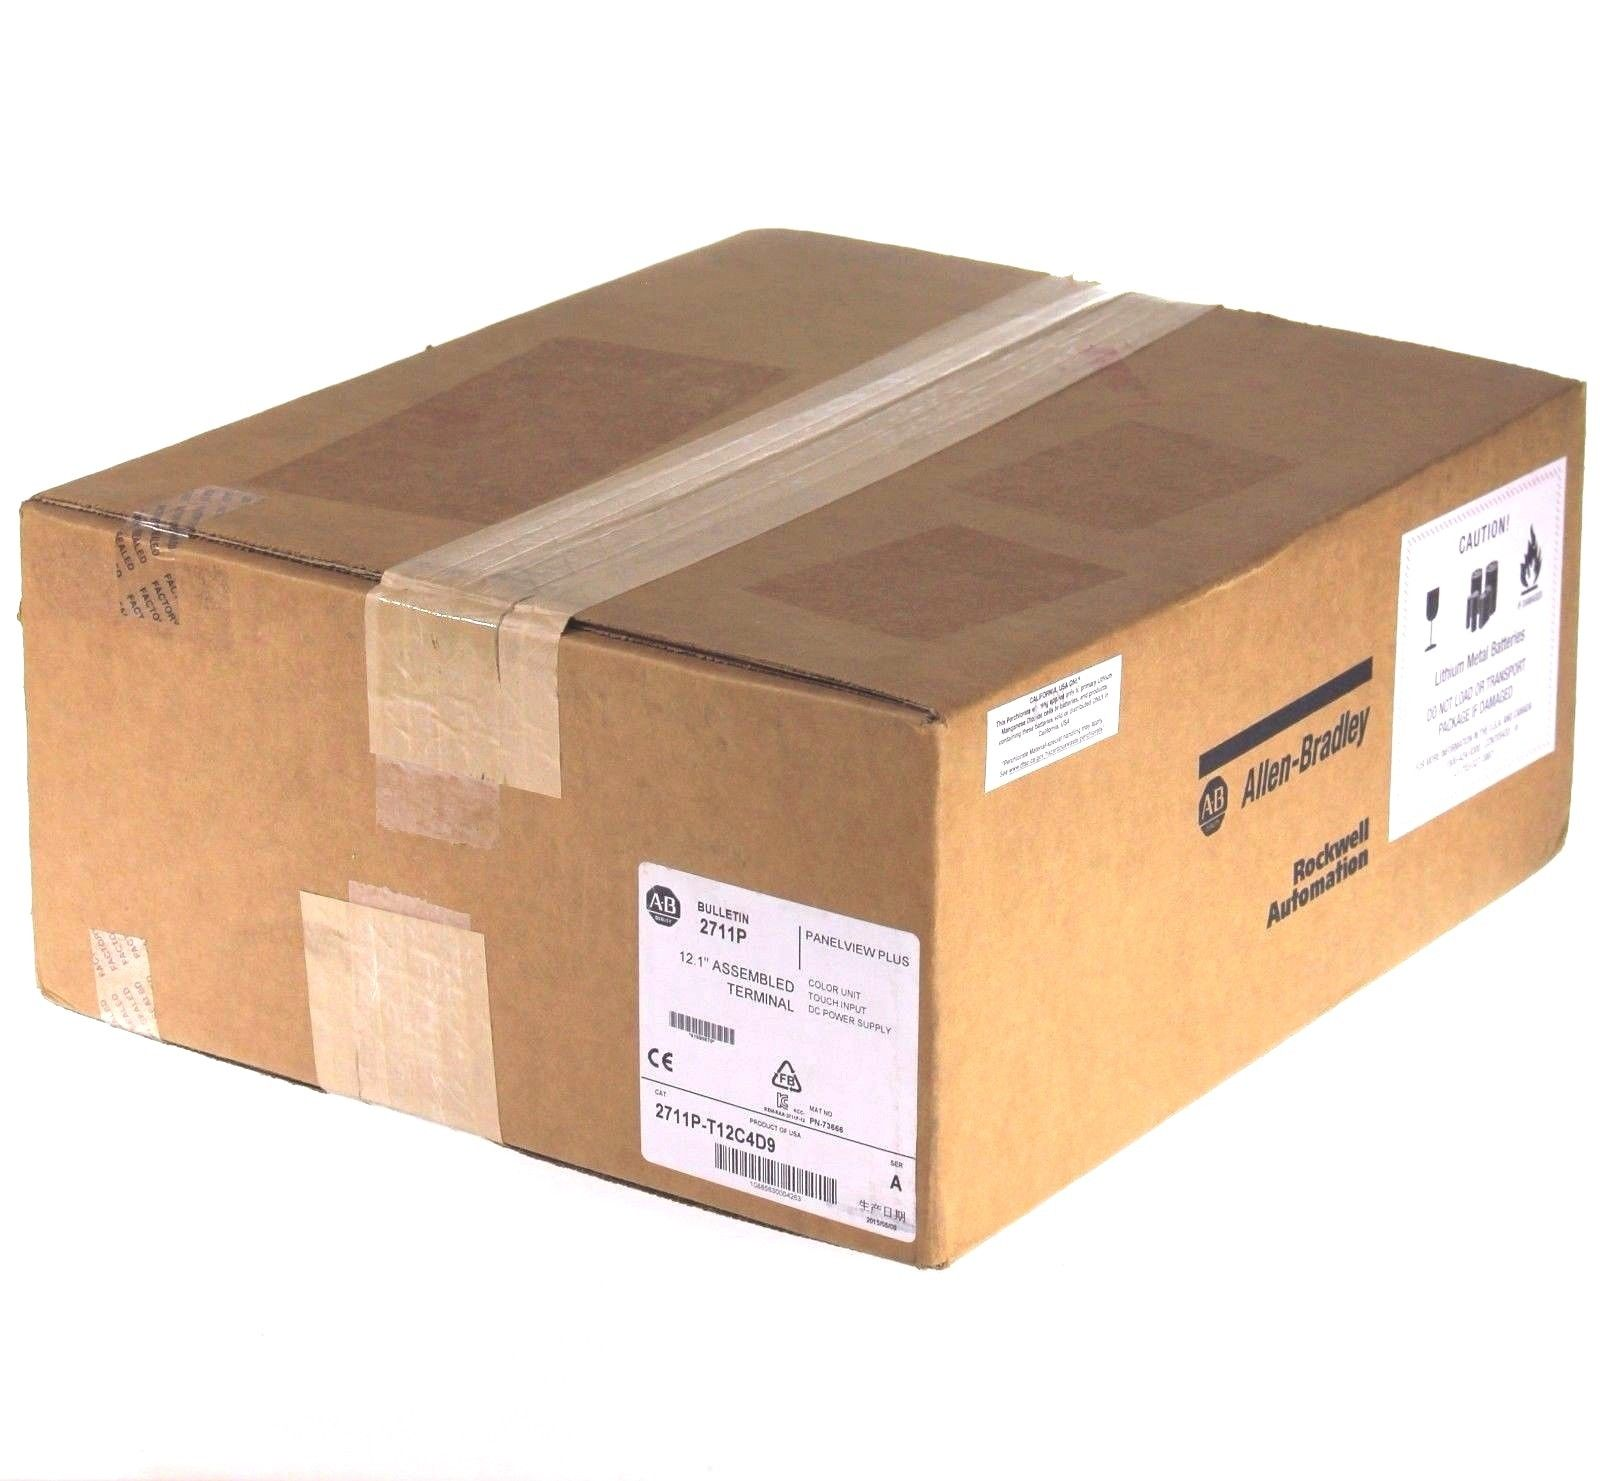 New 2015 Factory Sealed Allen Bradley 2711P-T12C4D9 PanelView Plus 6 1250